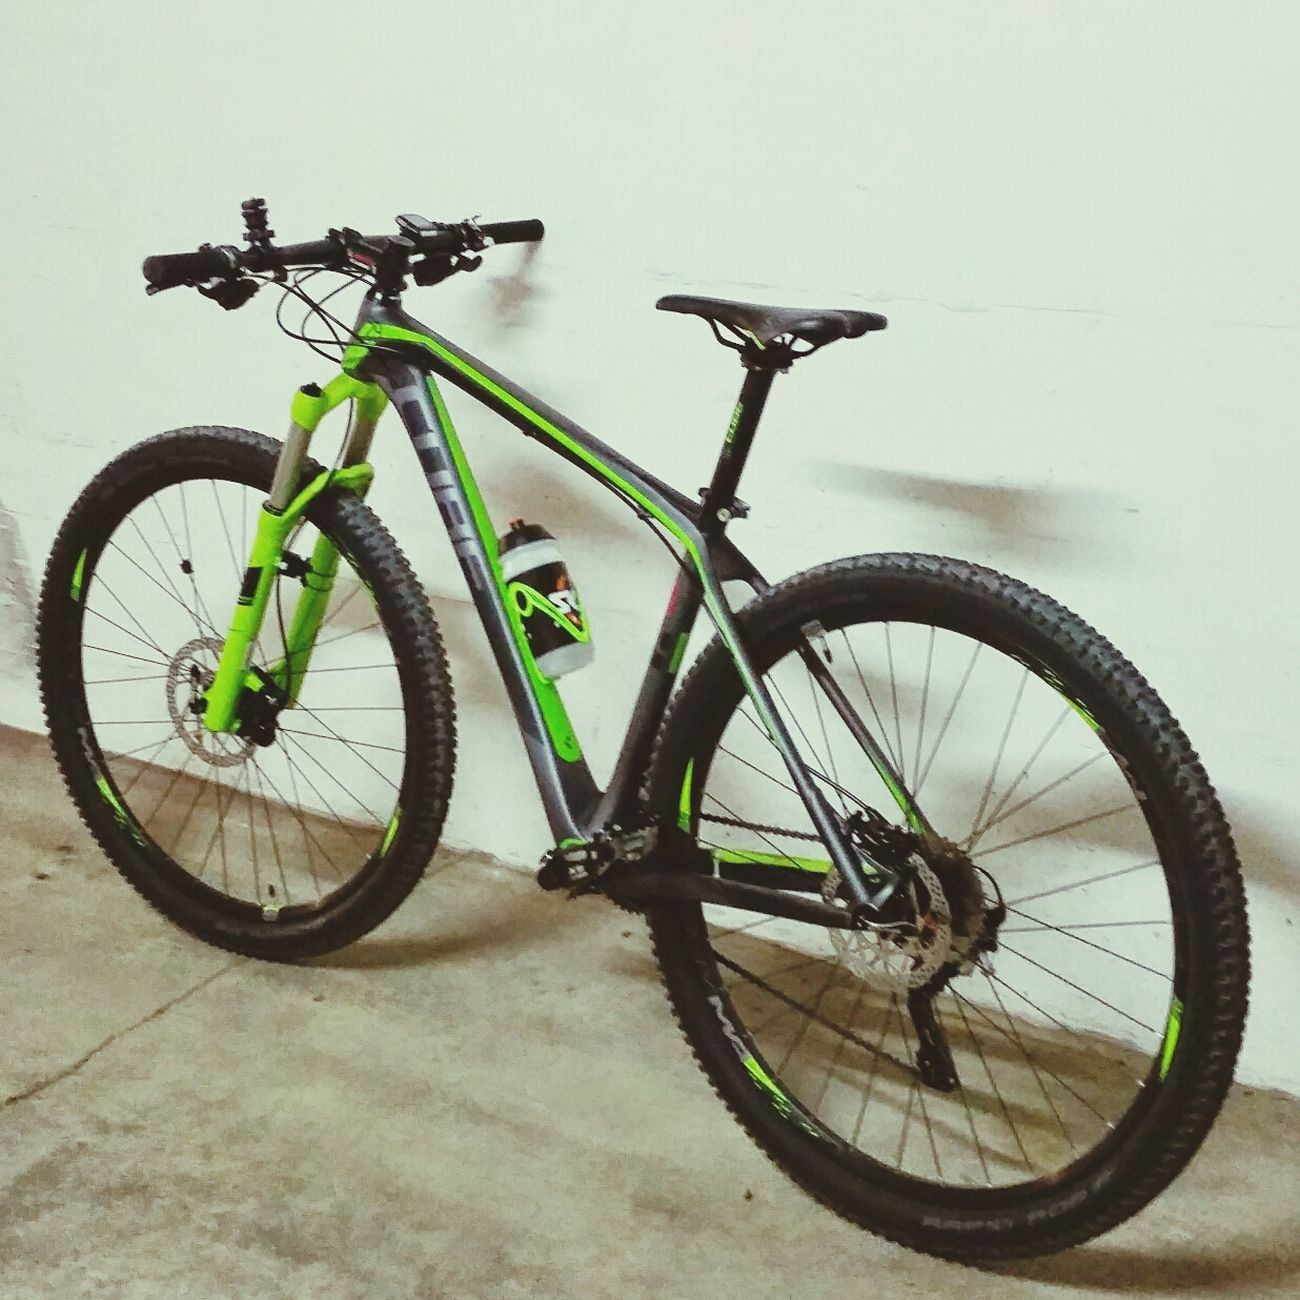 Reaction pro 29 GTC MTB CUBE HH88wlf Delirio 88 MTB MTB Biking